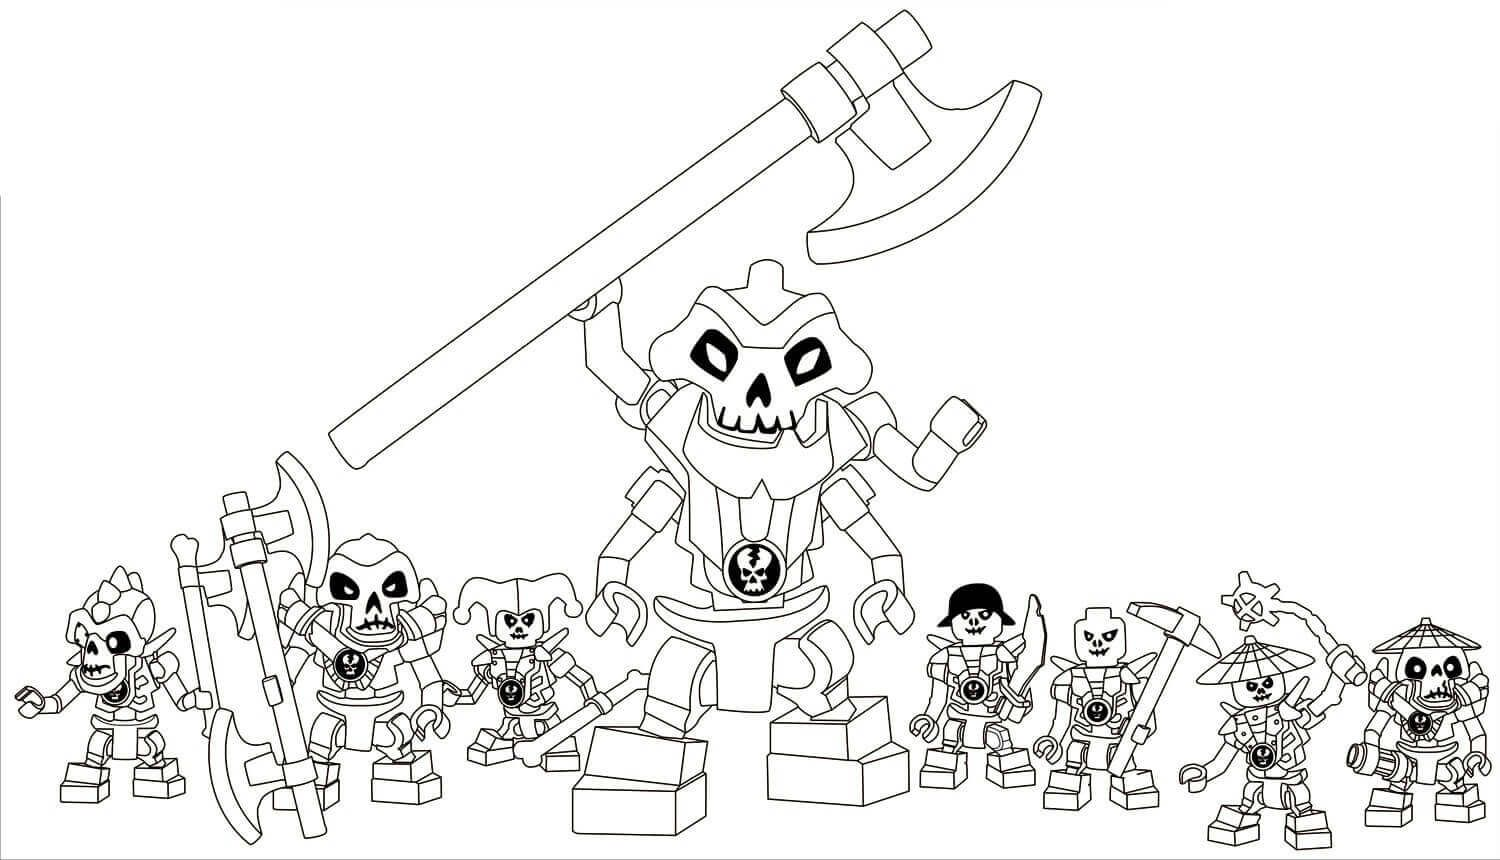 Lego Ninjago Coloring Pages Kruncha With His Team In 2020 Lego